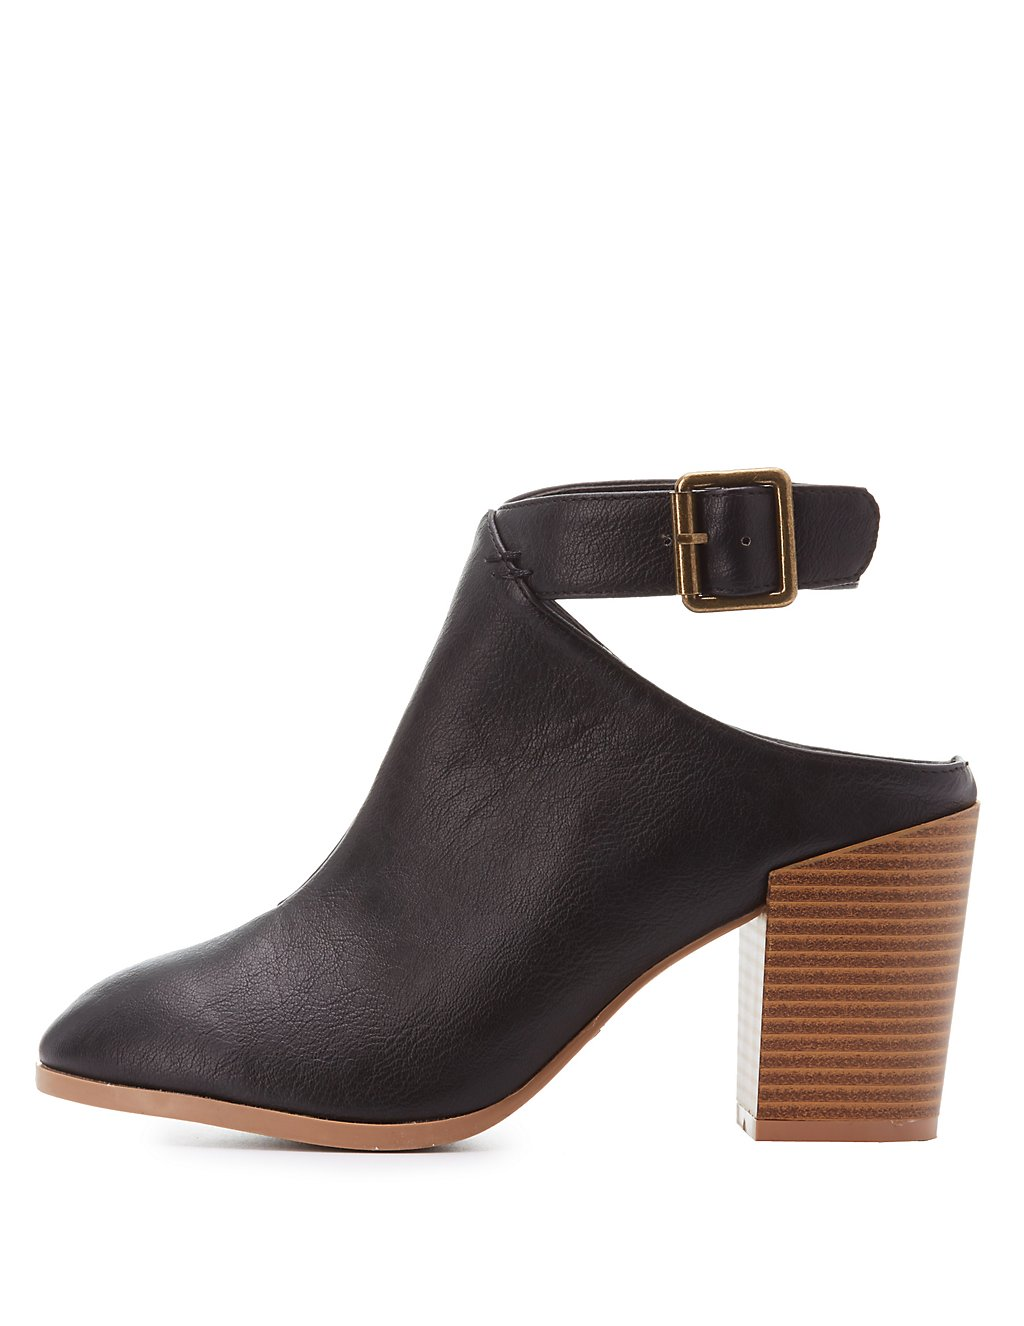 Sandals shoes sale - Qupid Buckled Cut Out Heel Booties